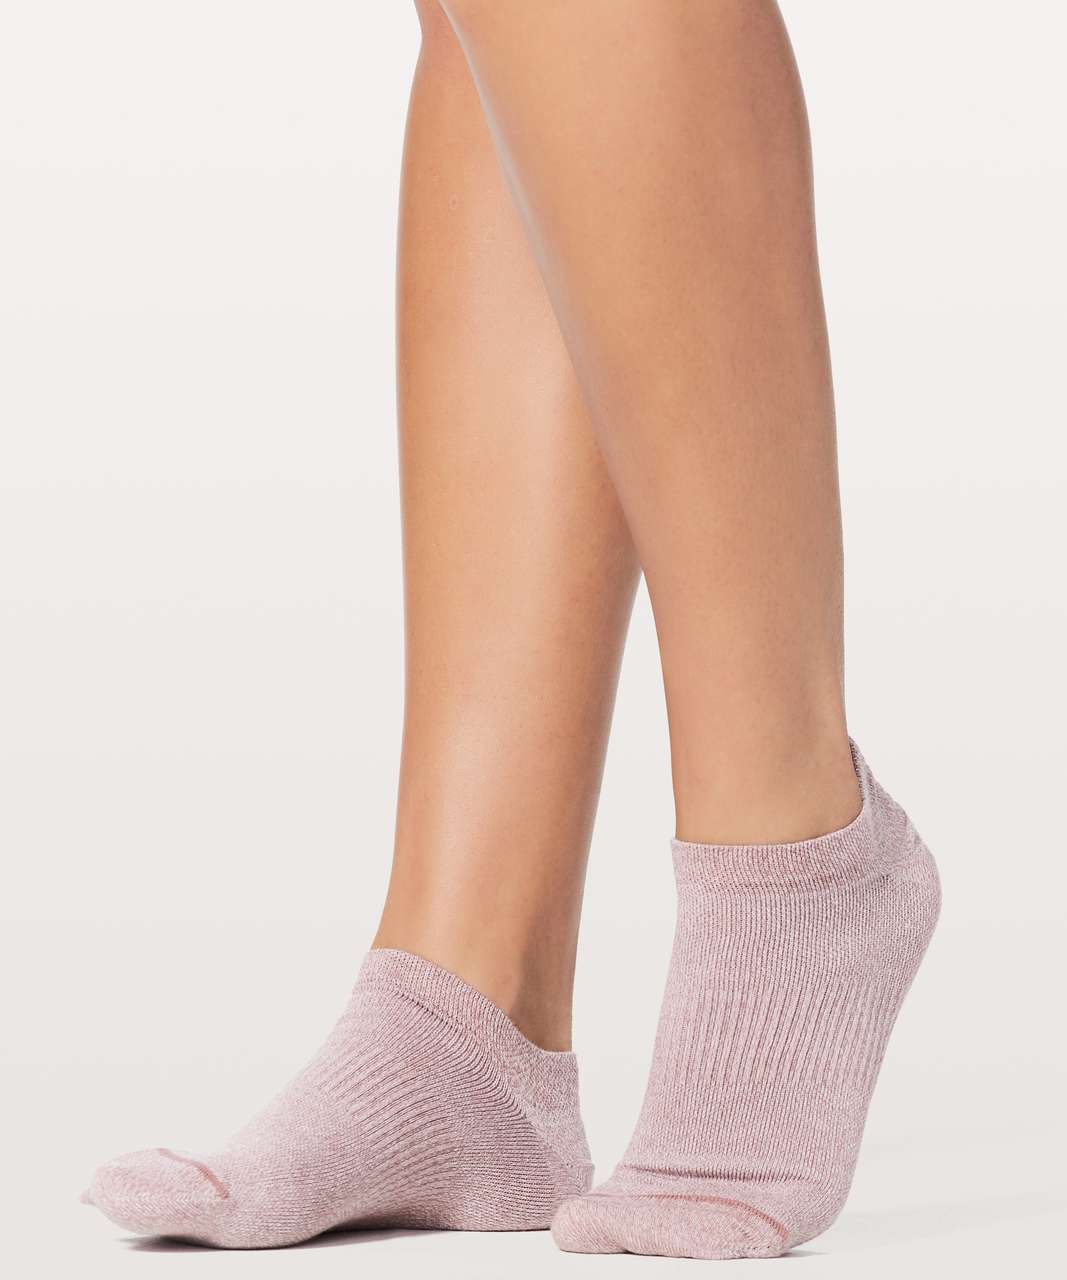 Lululemon All In A Day Sock - Quicksand / White / Cupcake Pink